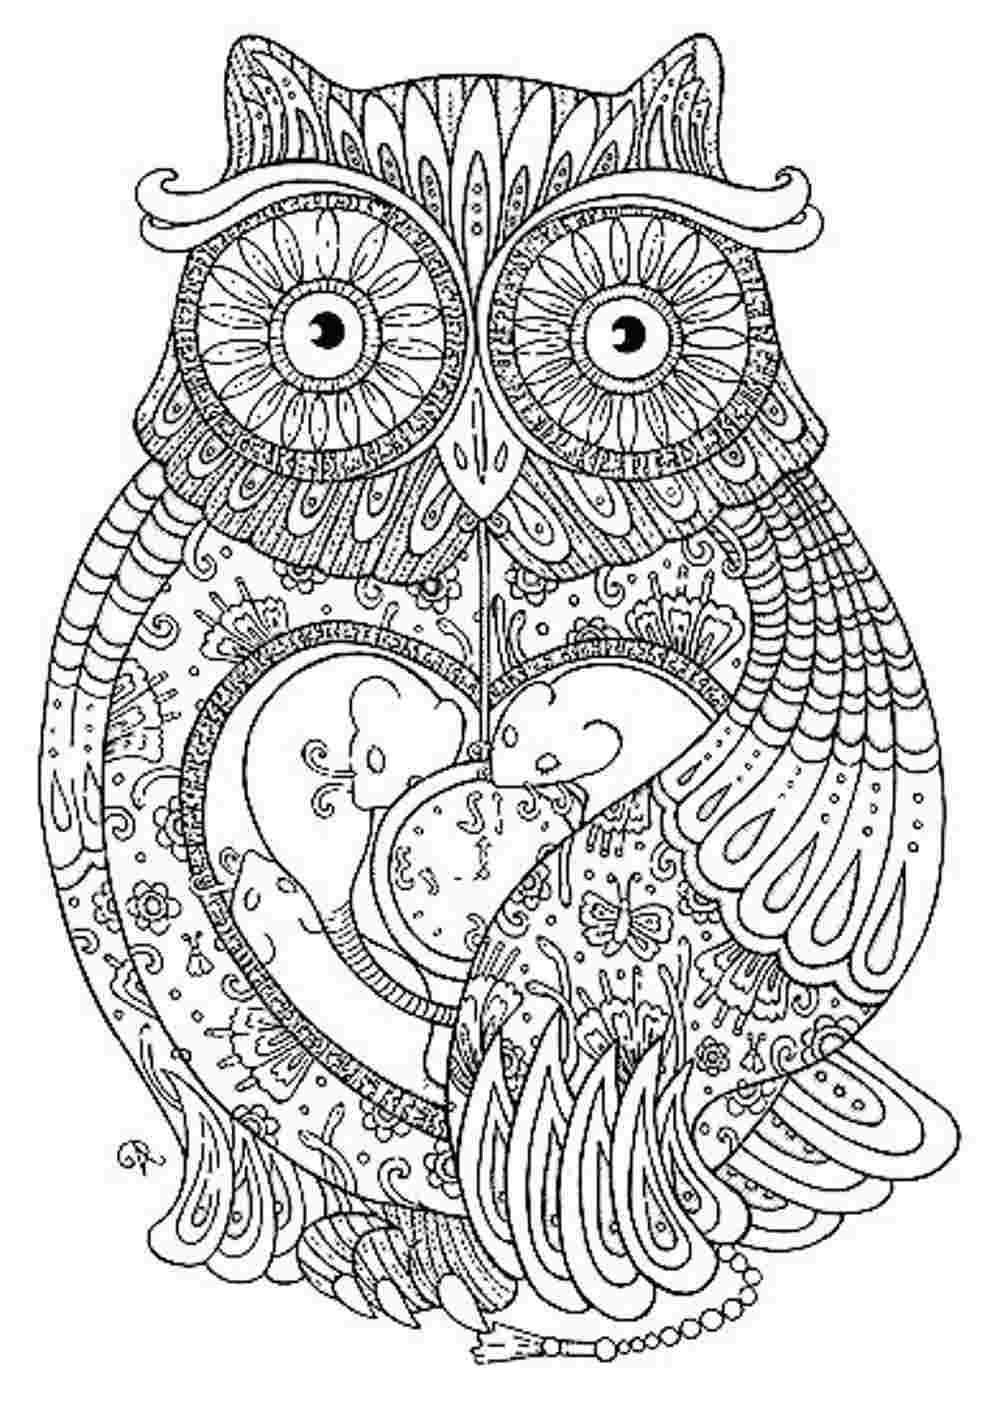 Best ideas about Detailed Coloring Pages For Adults . Save or Pin Adults Advanced Coloring Pages Difficult Coloring Pages Now.